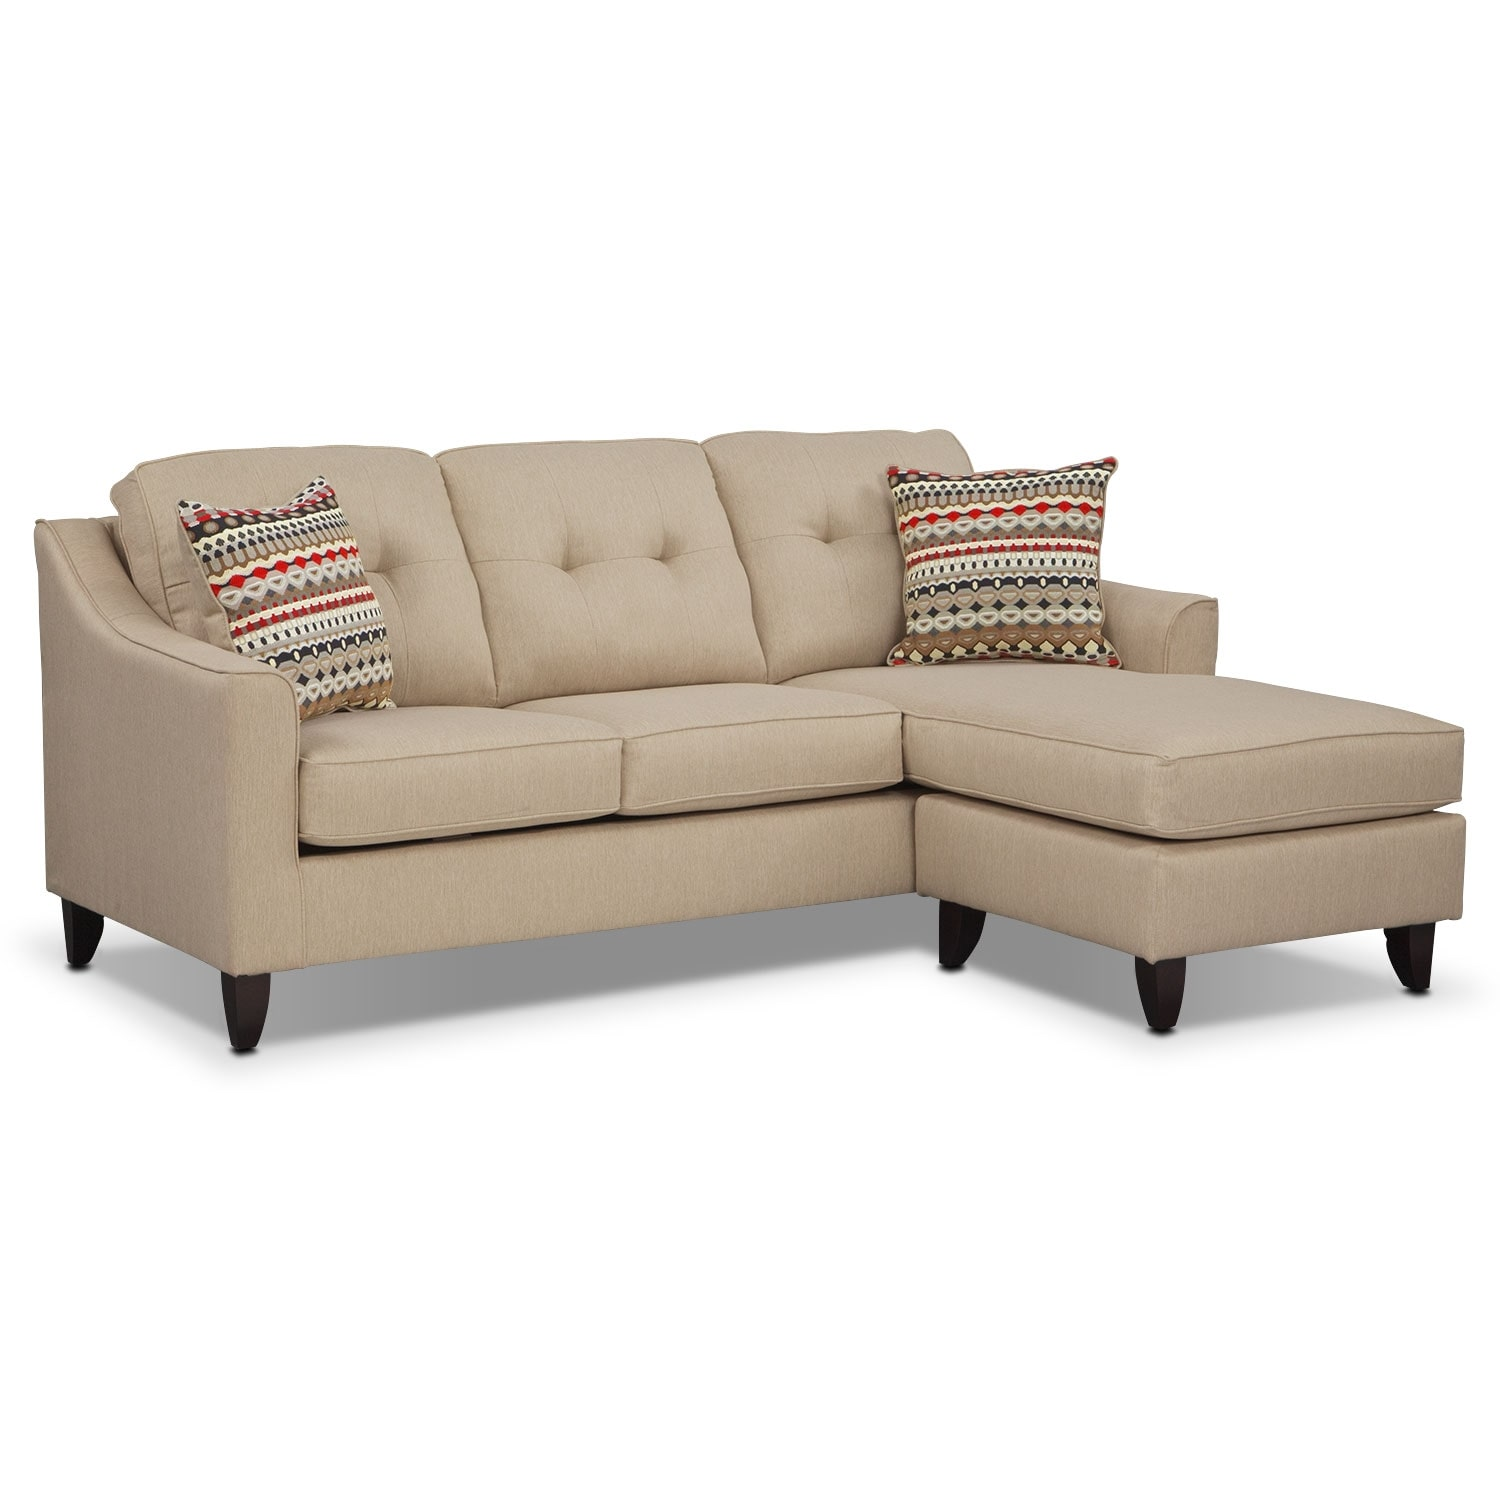 marco gray chaise sofa leather and loveseat with recliners cream value city furniture